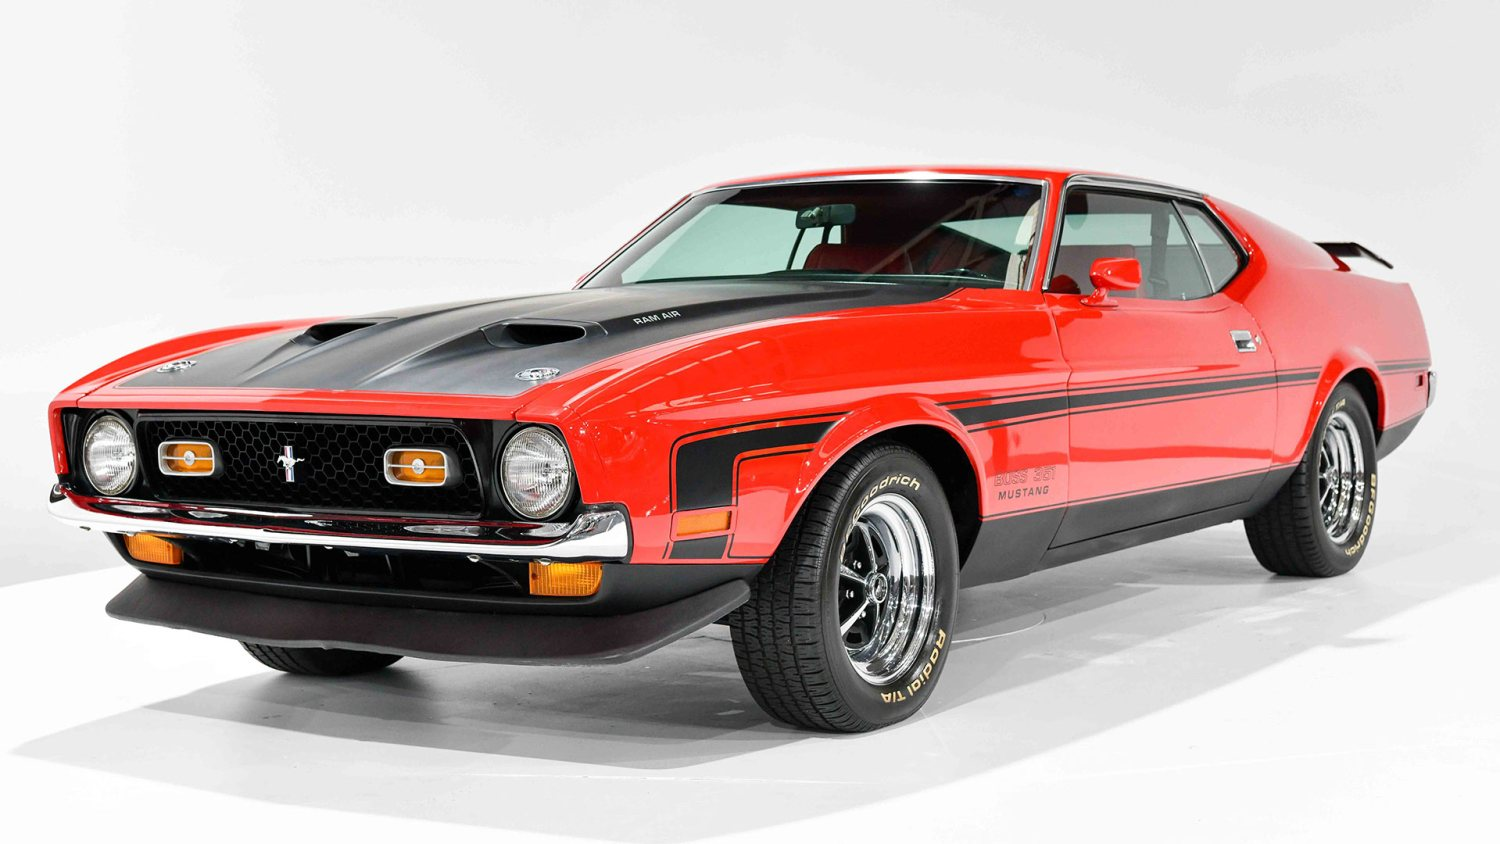 Classic Muscle Cars >> Muscle Cars And More Must Go In Australian Museum Sale This Weekend